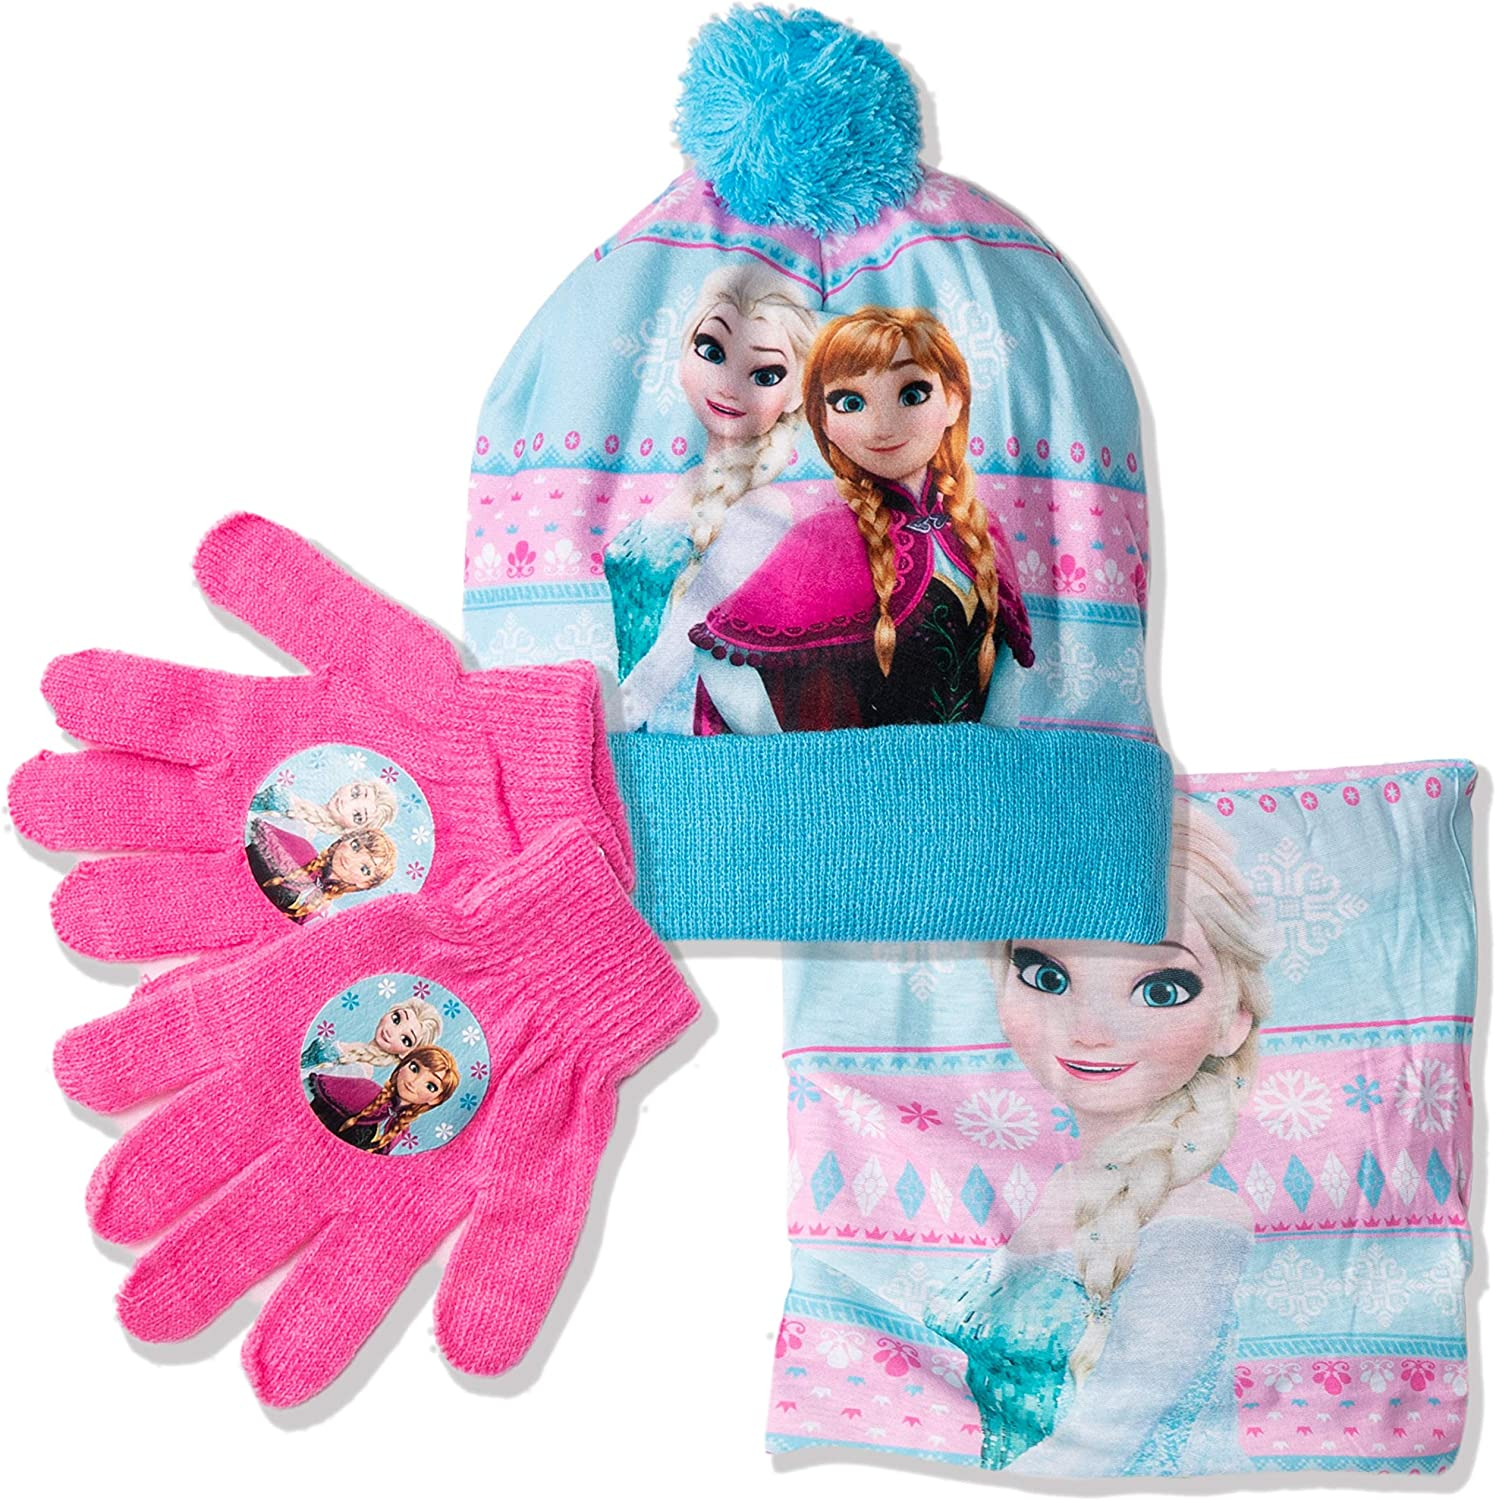 Snood and Gloves Purple Anna Elsa Characters 52 Disney Orginal Frozen Girls Warm Winter 3 Pieces Set of Bobble Style Hat with Pom Pom